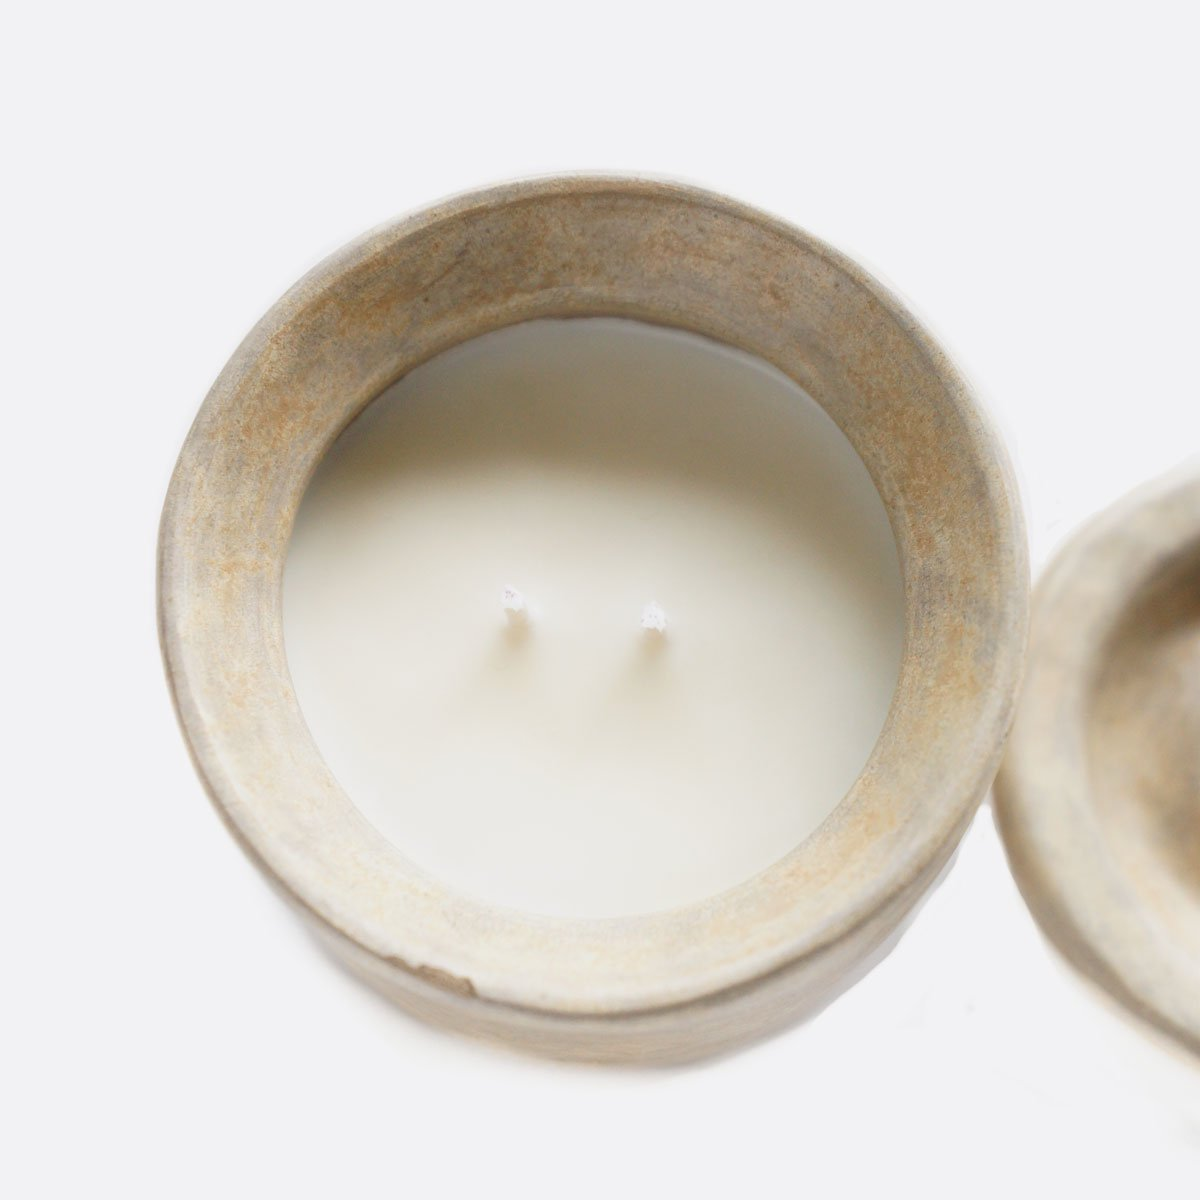 ENDS & MEANS  POTTERY SOY CANDLE (SAND)2